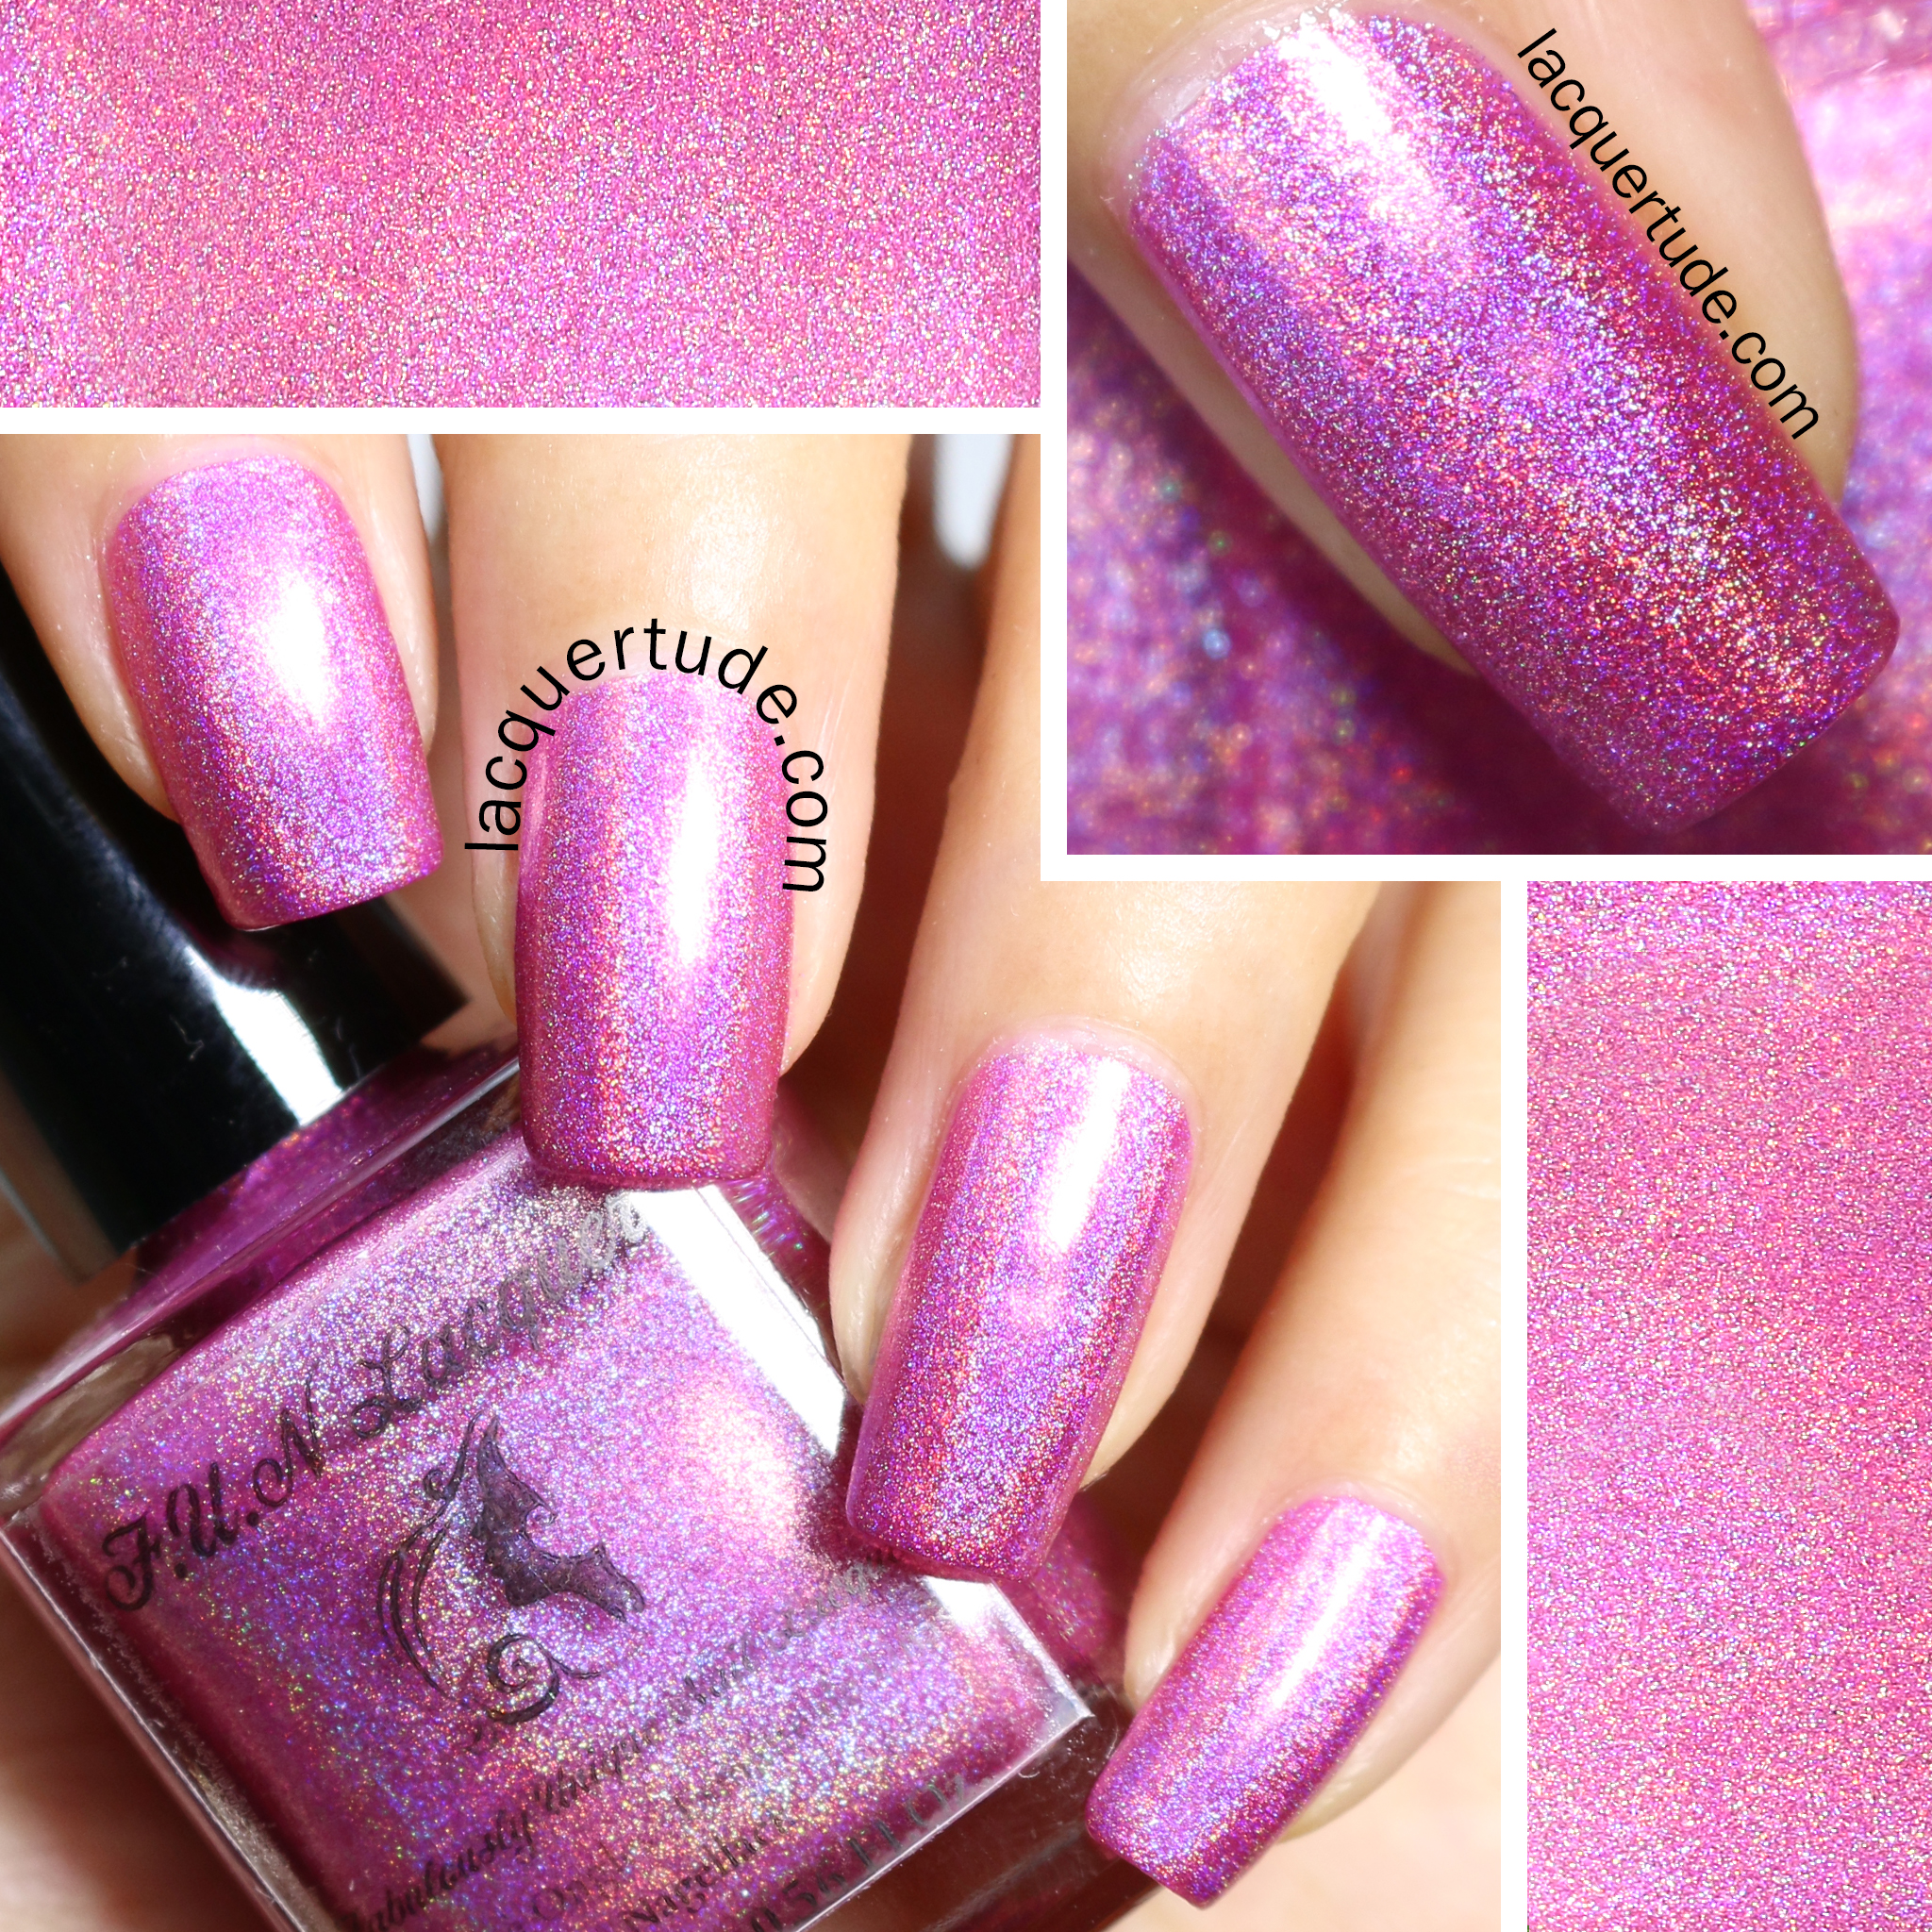 FUN-Lacquer-Uniform-For-Summer-Bikini-Swatch-Collage